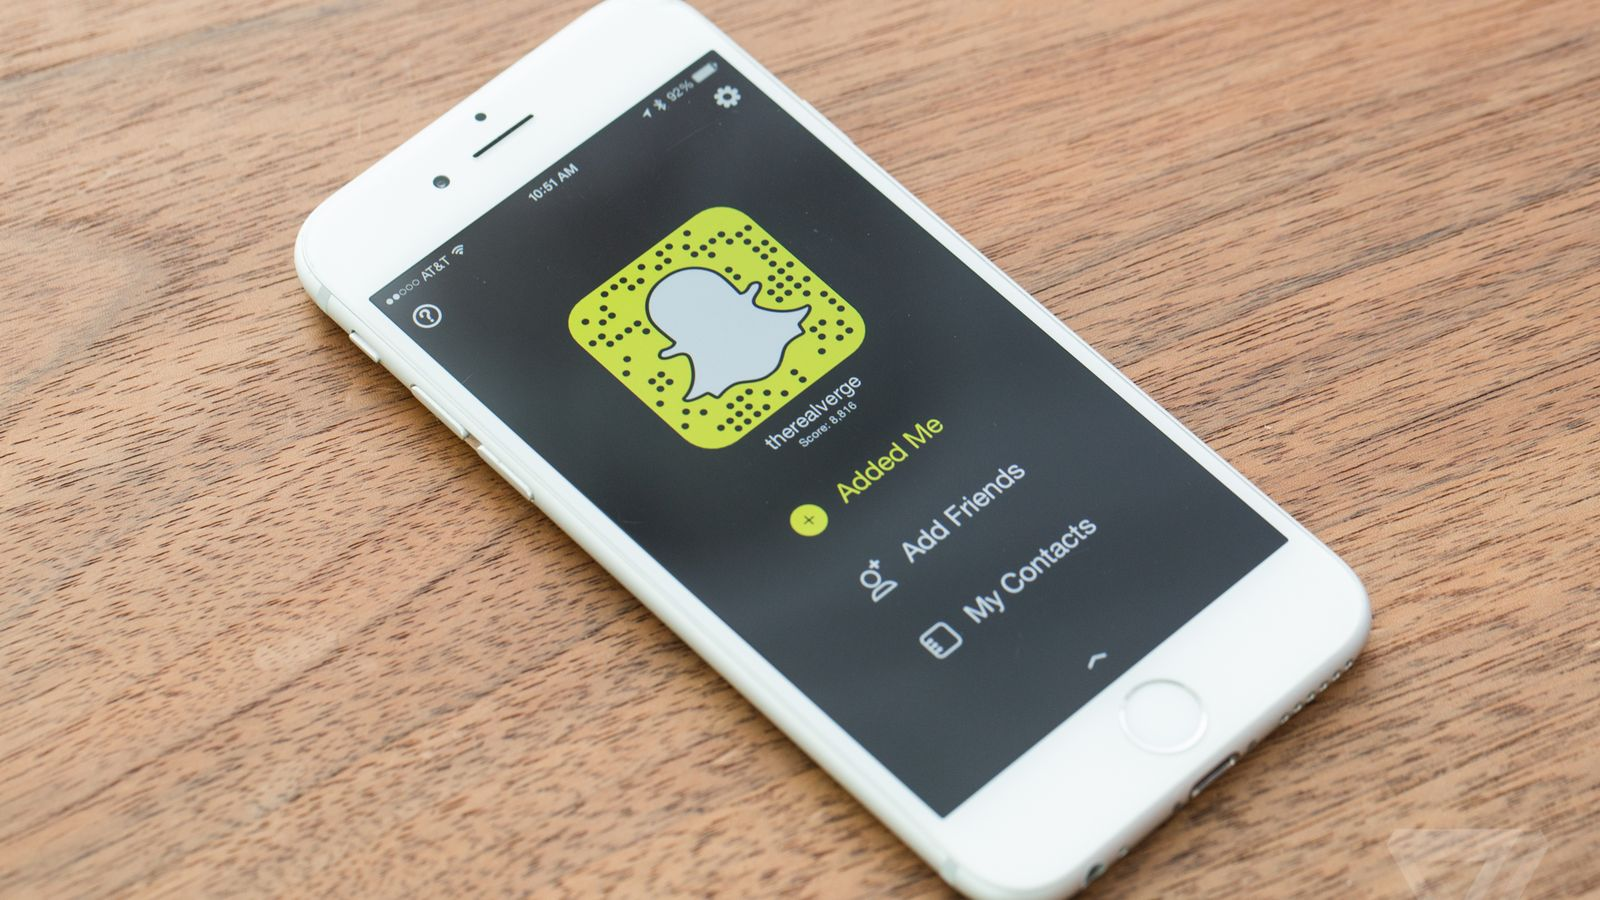 snapchat going ipo